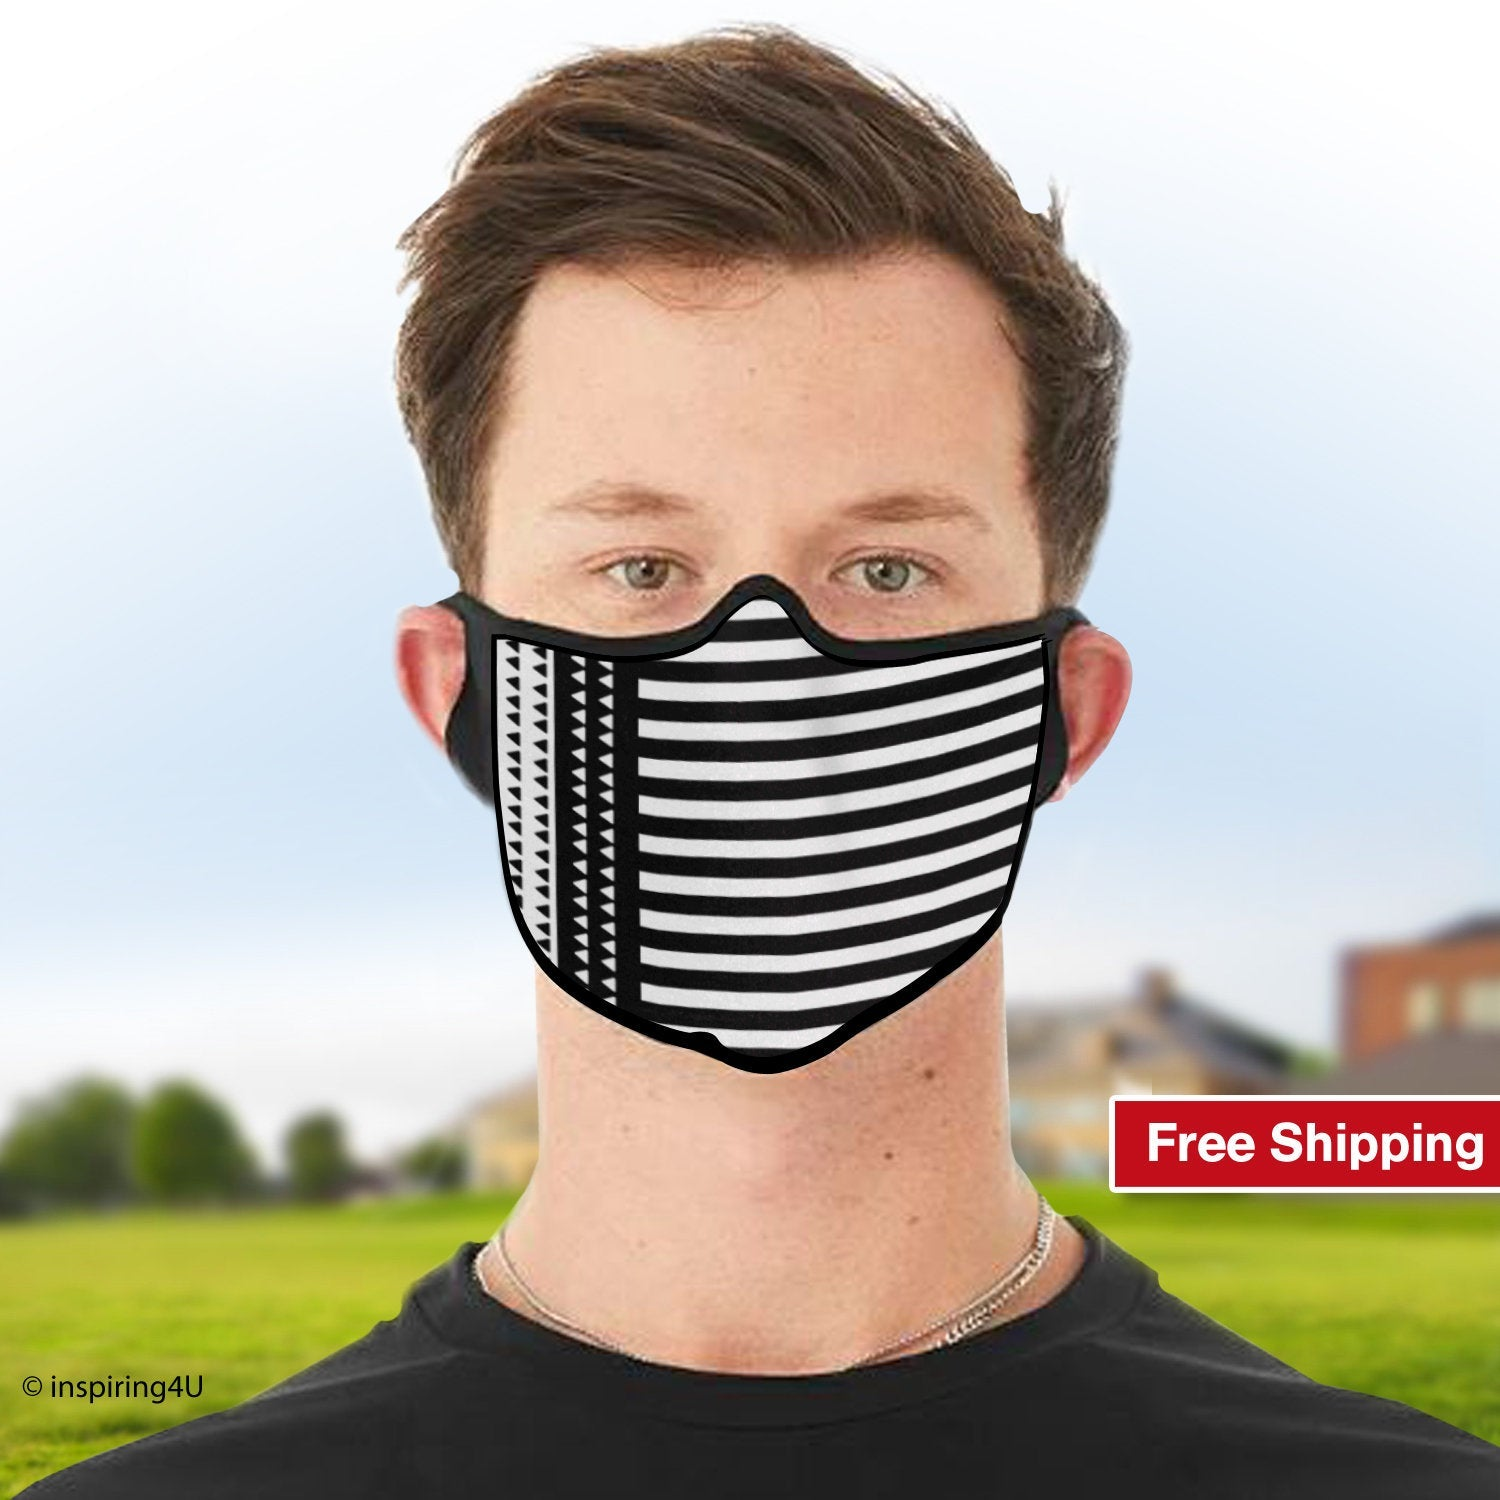 Washable, Breathable, Reusable, Soft polyester Face mask, Travel handmade mask. Unisex recycled mask. Nose mouth black white fabric mask.